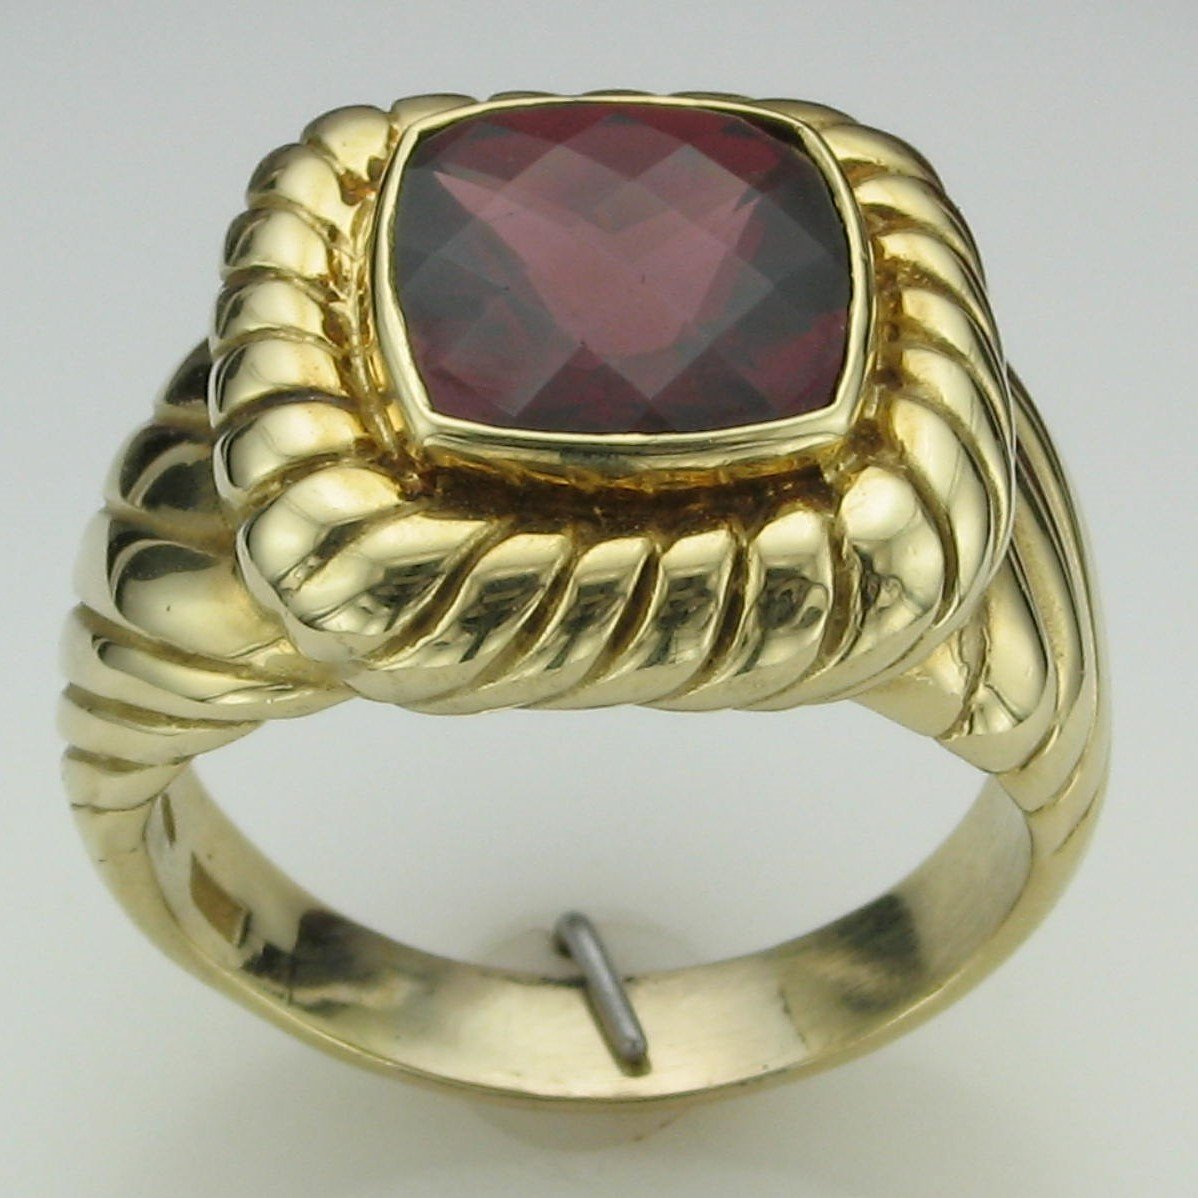 5.75ct Pyrope Garnet Men's Ring set in 18K Yellow Gold